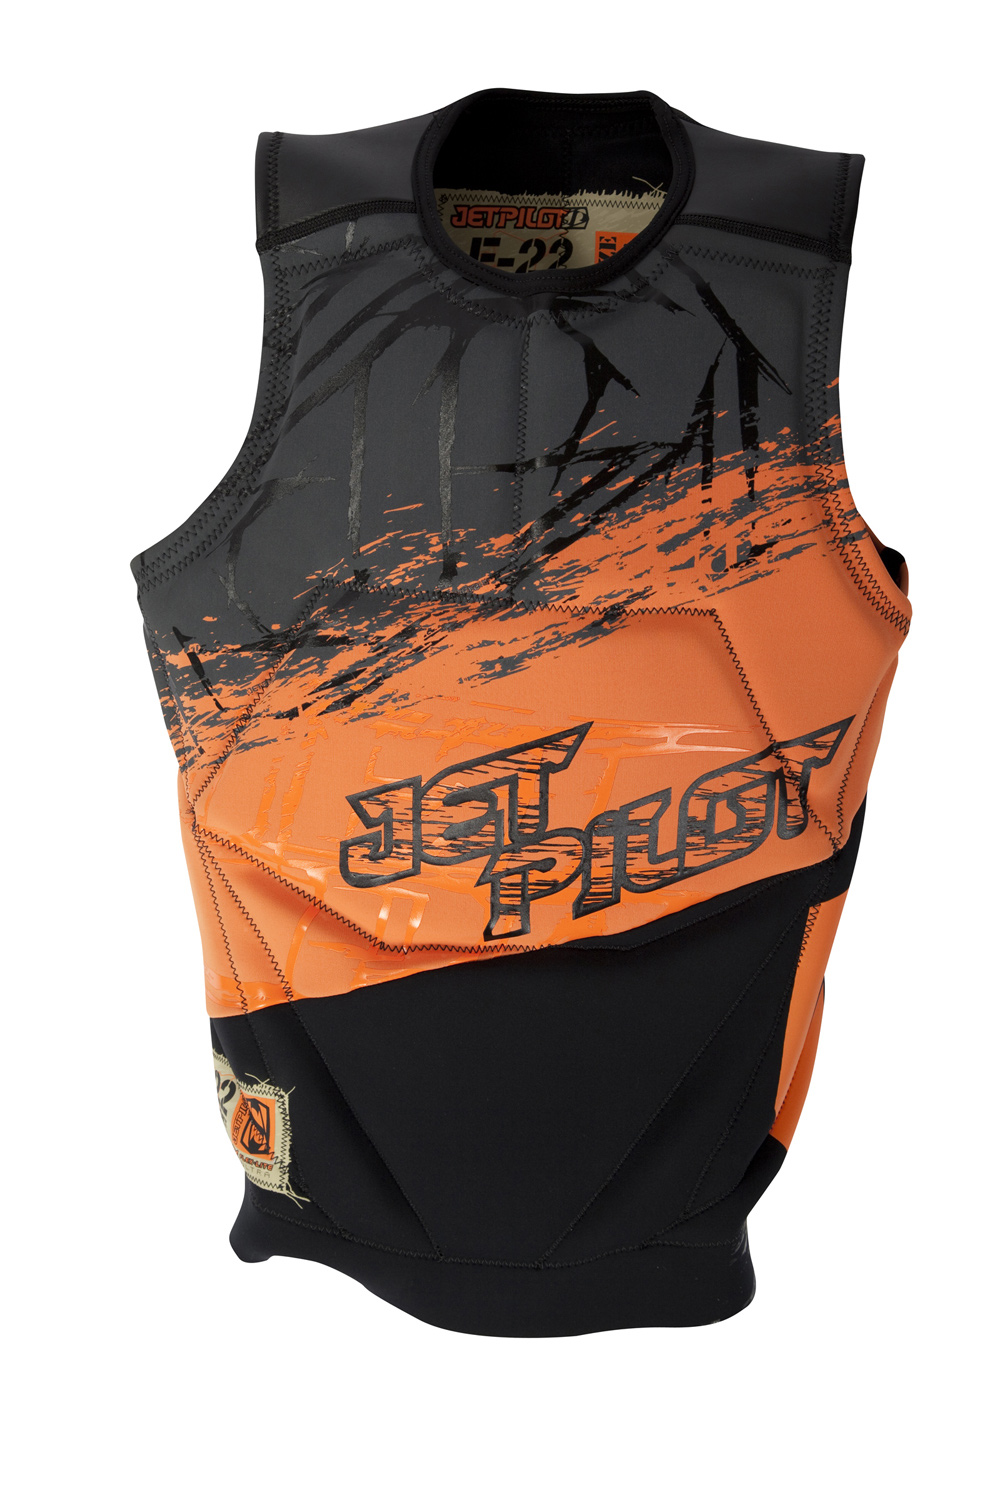 Wake Key Features of the Jet Pilot F-22 Comp Wakeboard Vest: All 2mm Neoprene Unmatched Stretch for performance A Classic pull over design Custom screen printed branding - $83.95